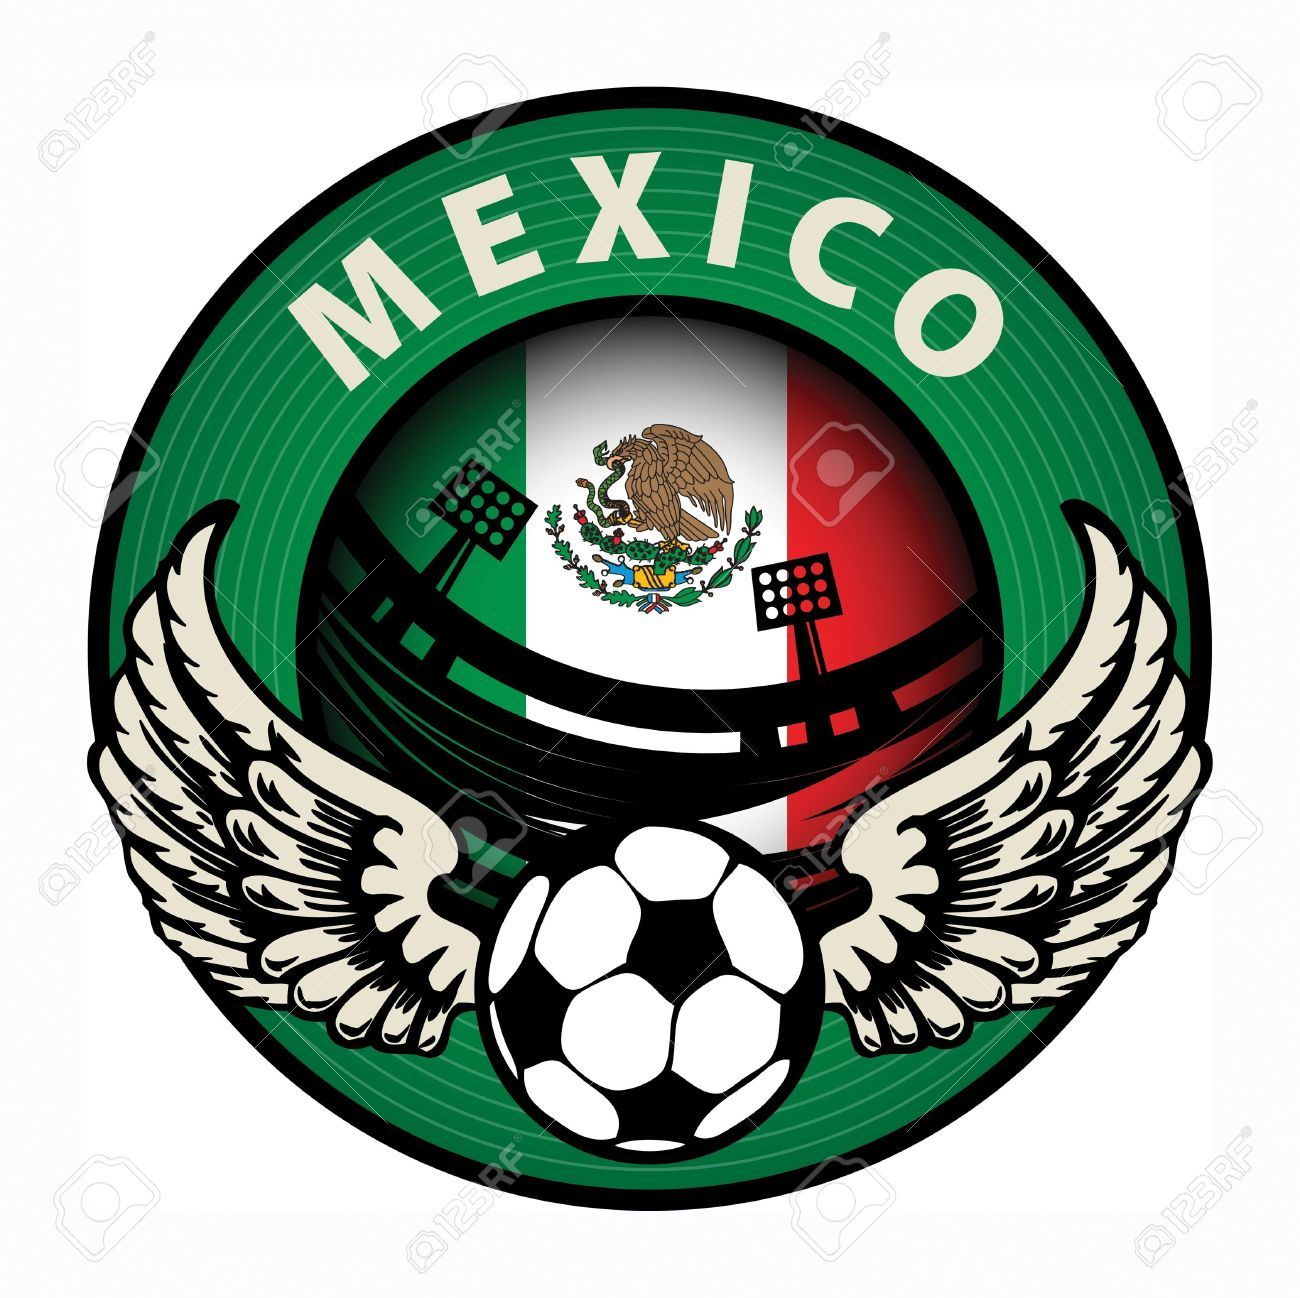 18230726 Label With Football And Name Mexico Stock Vector Mexico Soccer Jpg 1300 1298 With Images Car Bumper Stickers Bumper Stickers Mexico Soccer